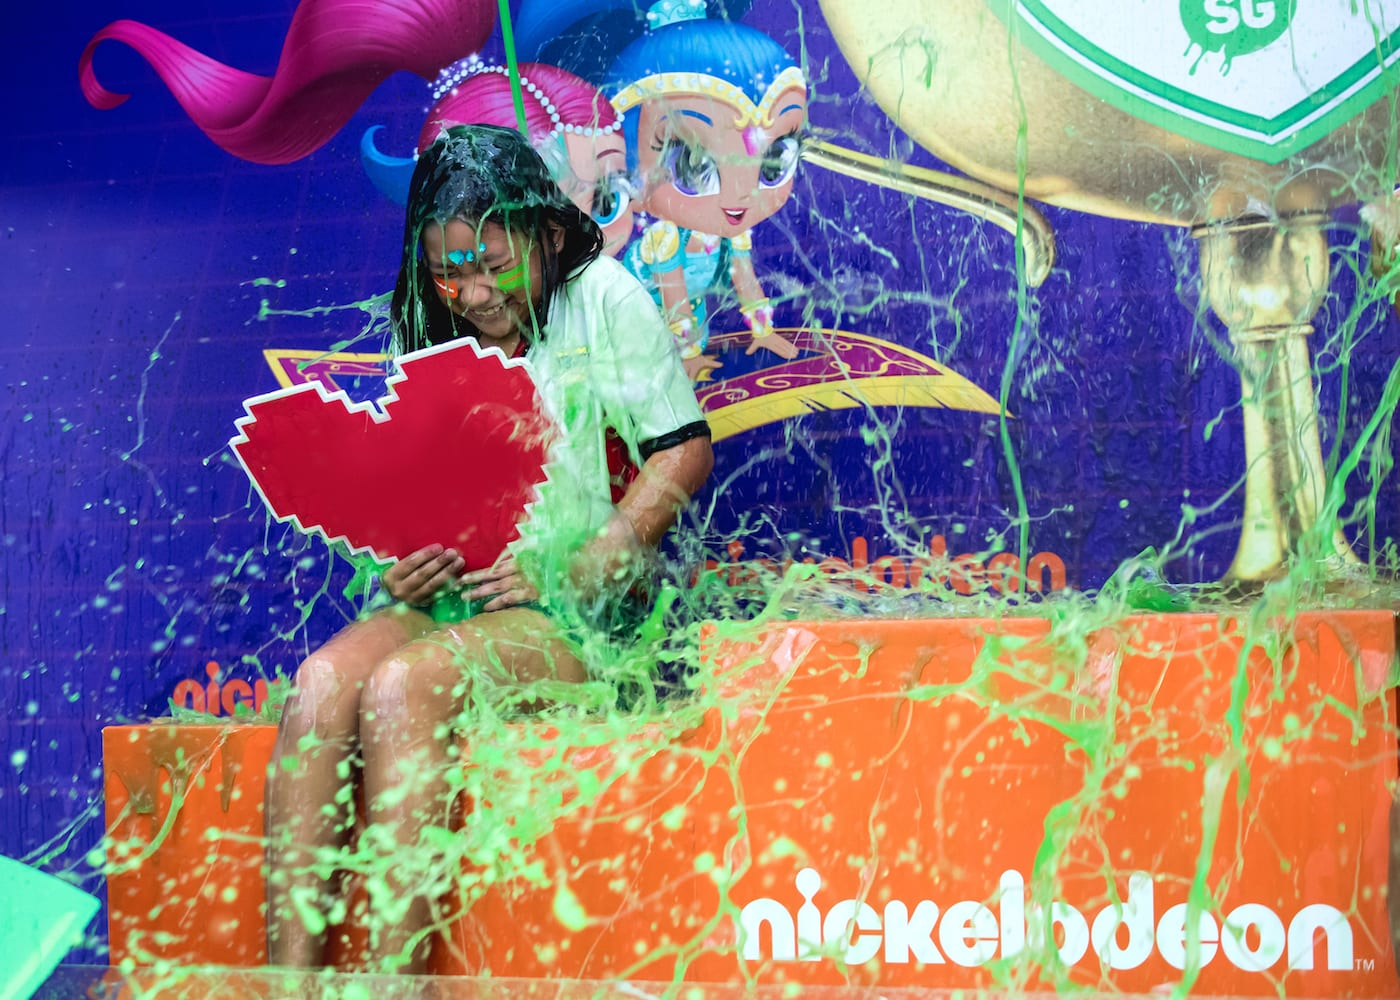 Get slimed! First In-Mall Slime Experience for kids at City Square Mall